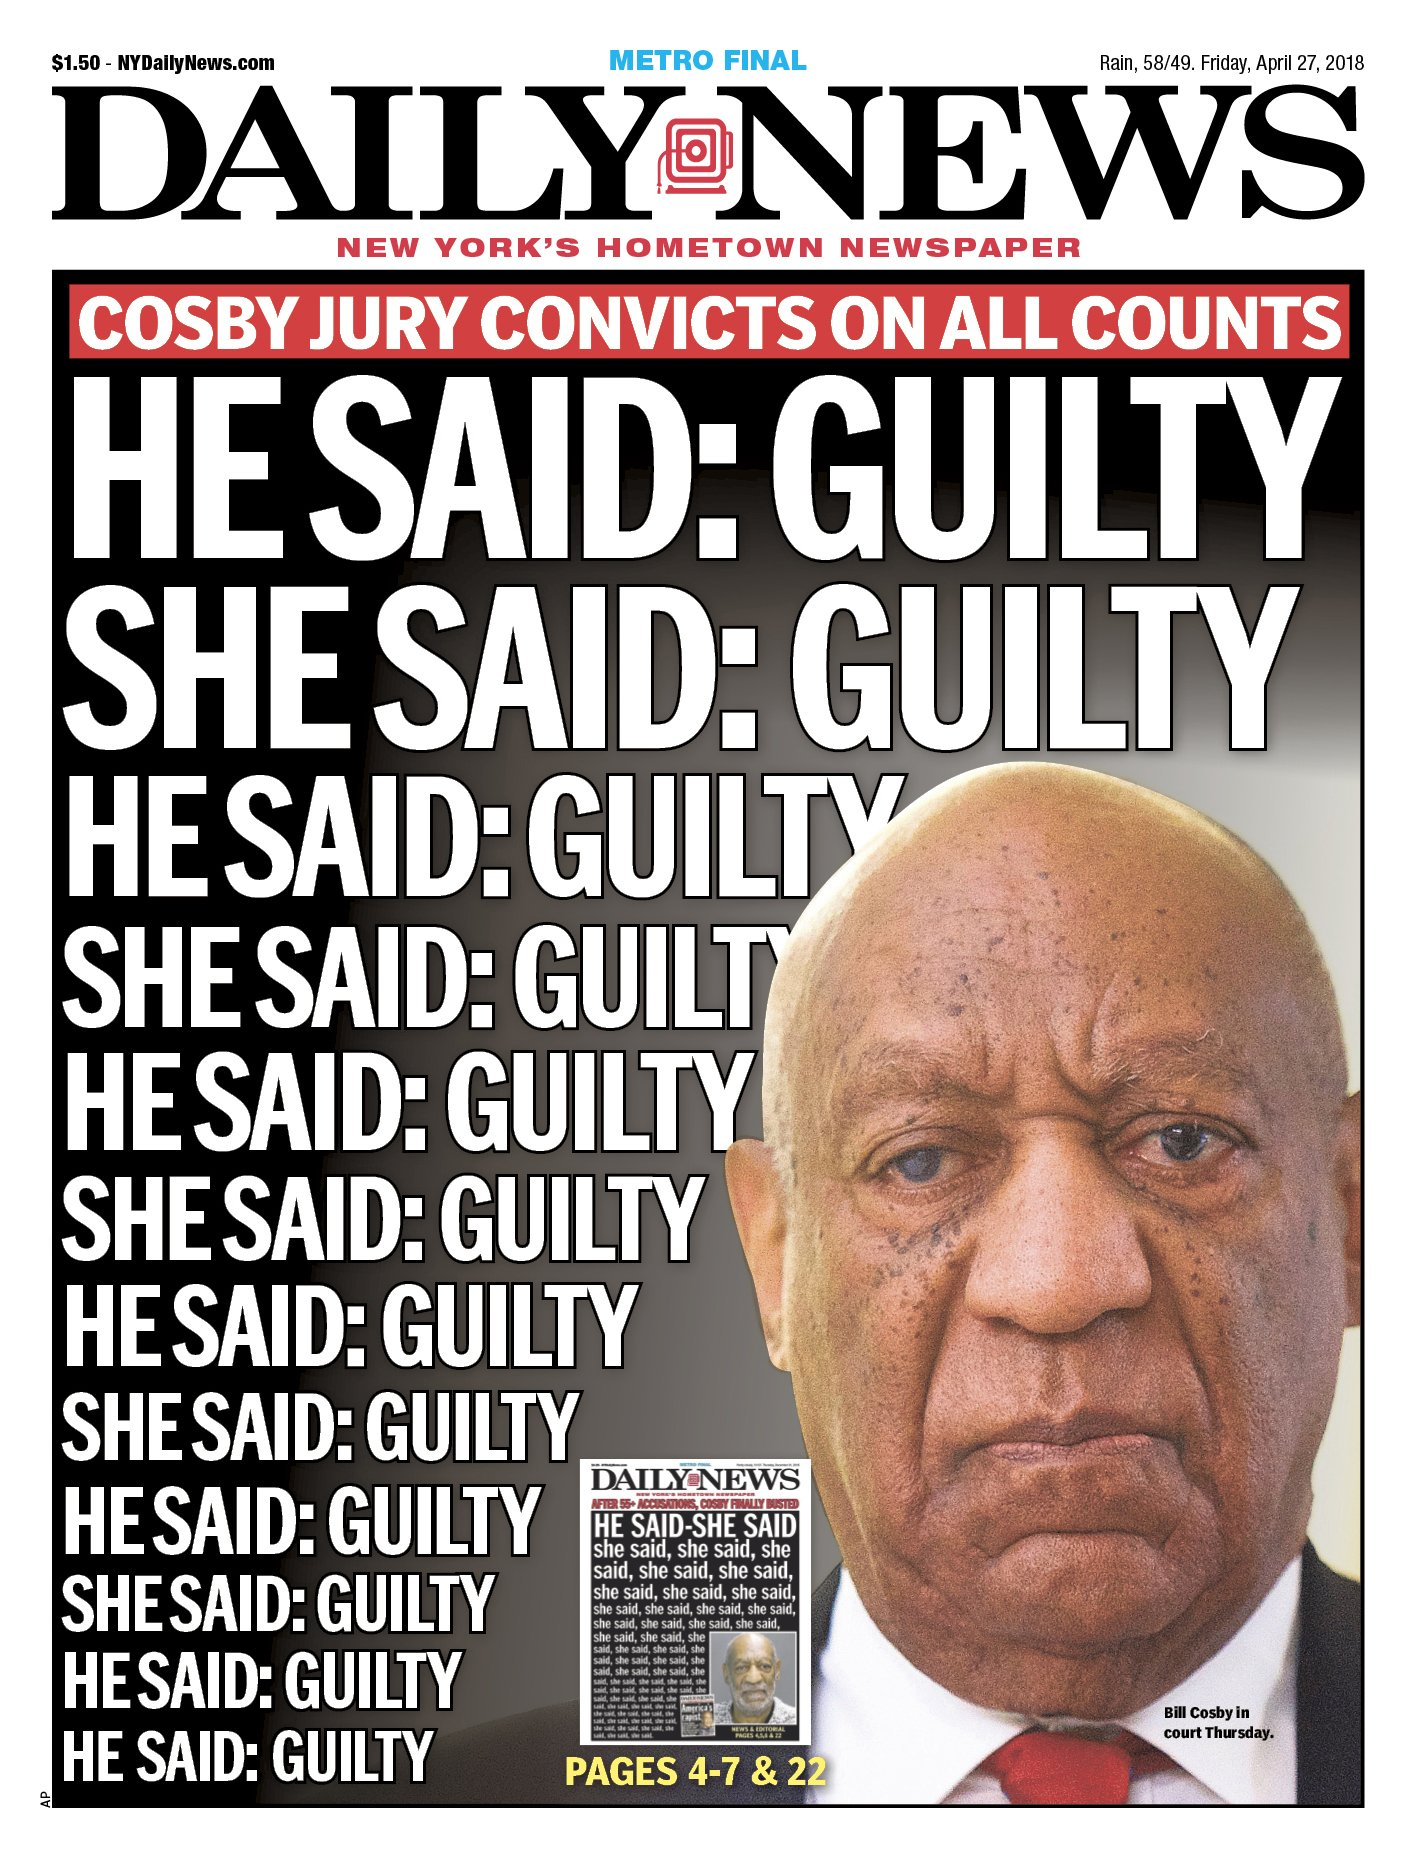 Time's up, @BillCosby. https://t.co/g8qmkznKSd  An early look at Friday's front page... https://t.co/7g96h5DcZ7